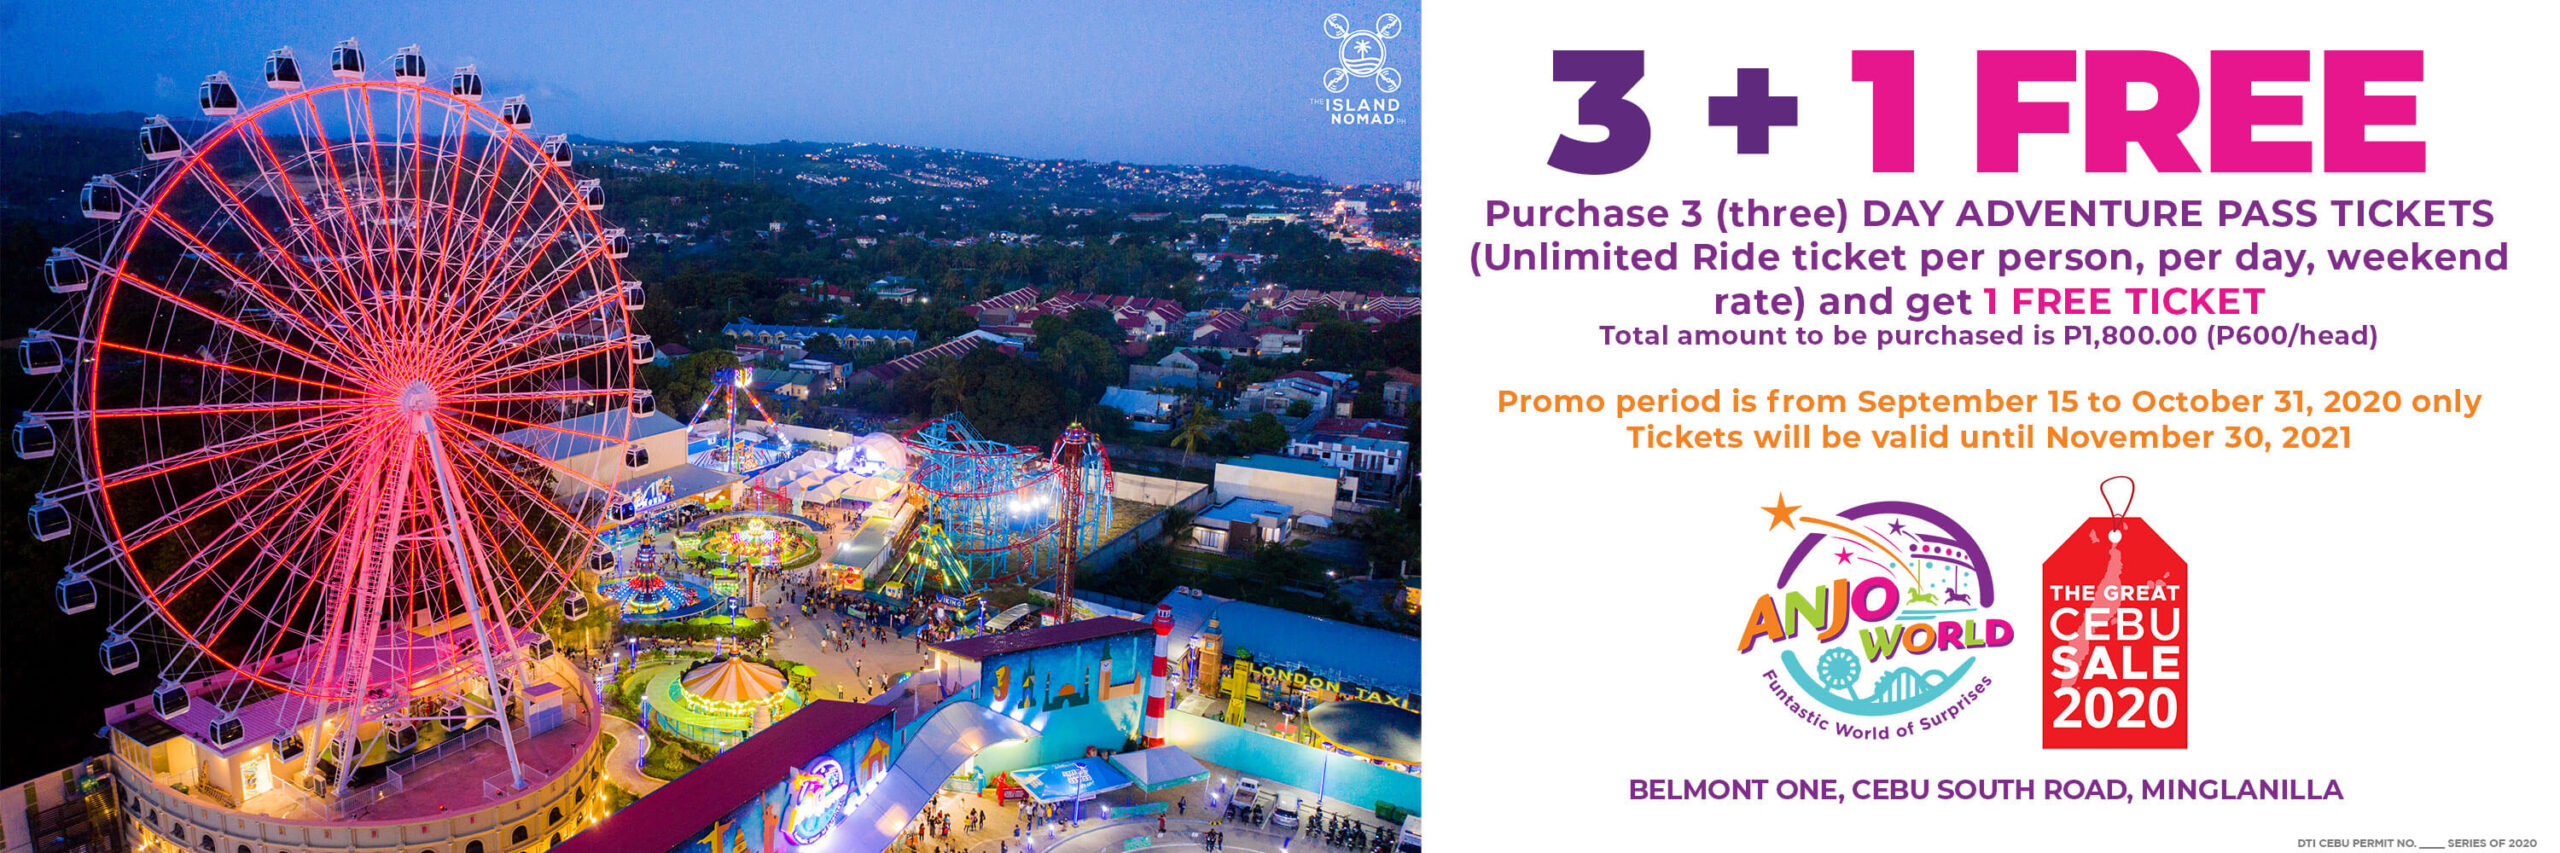 Anjo World offers 3+1 Day Adventure Pass Tickets promo